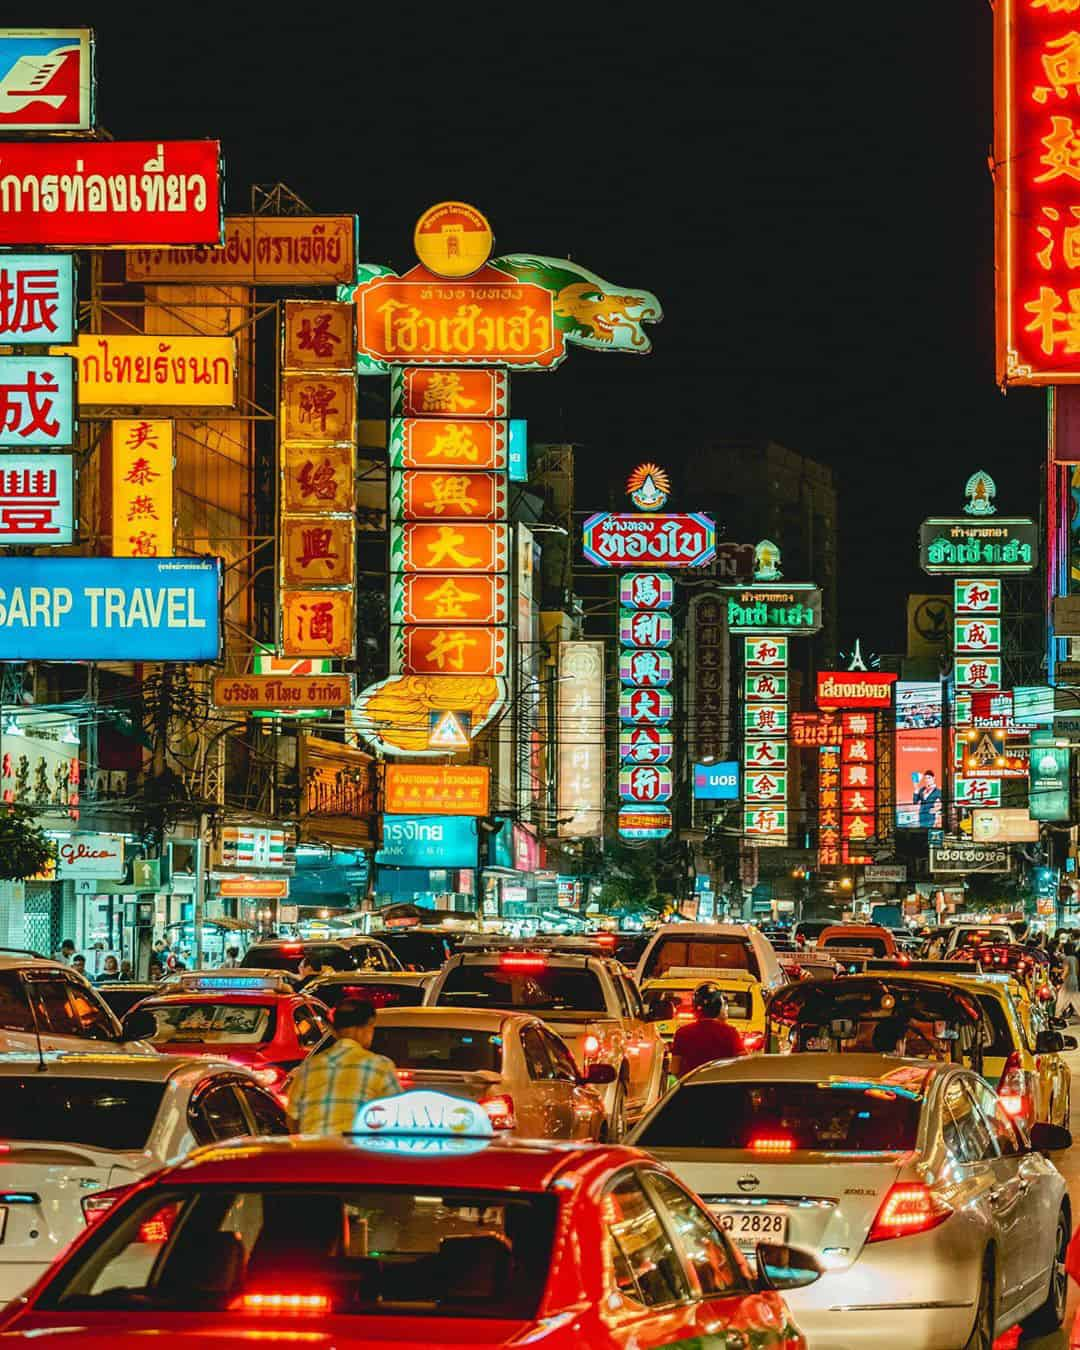 Vibrant Urban Photography by Tim Wah